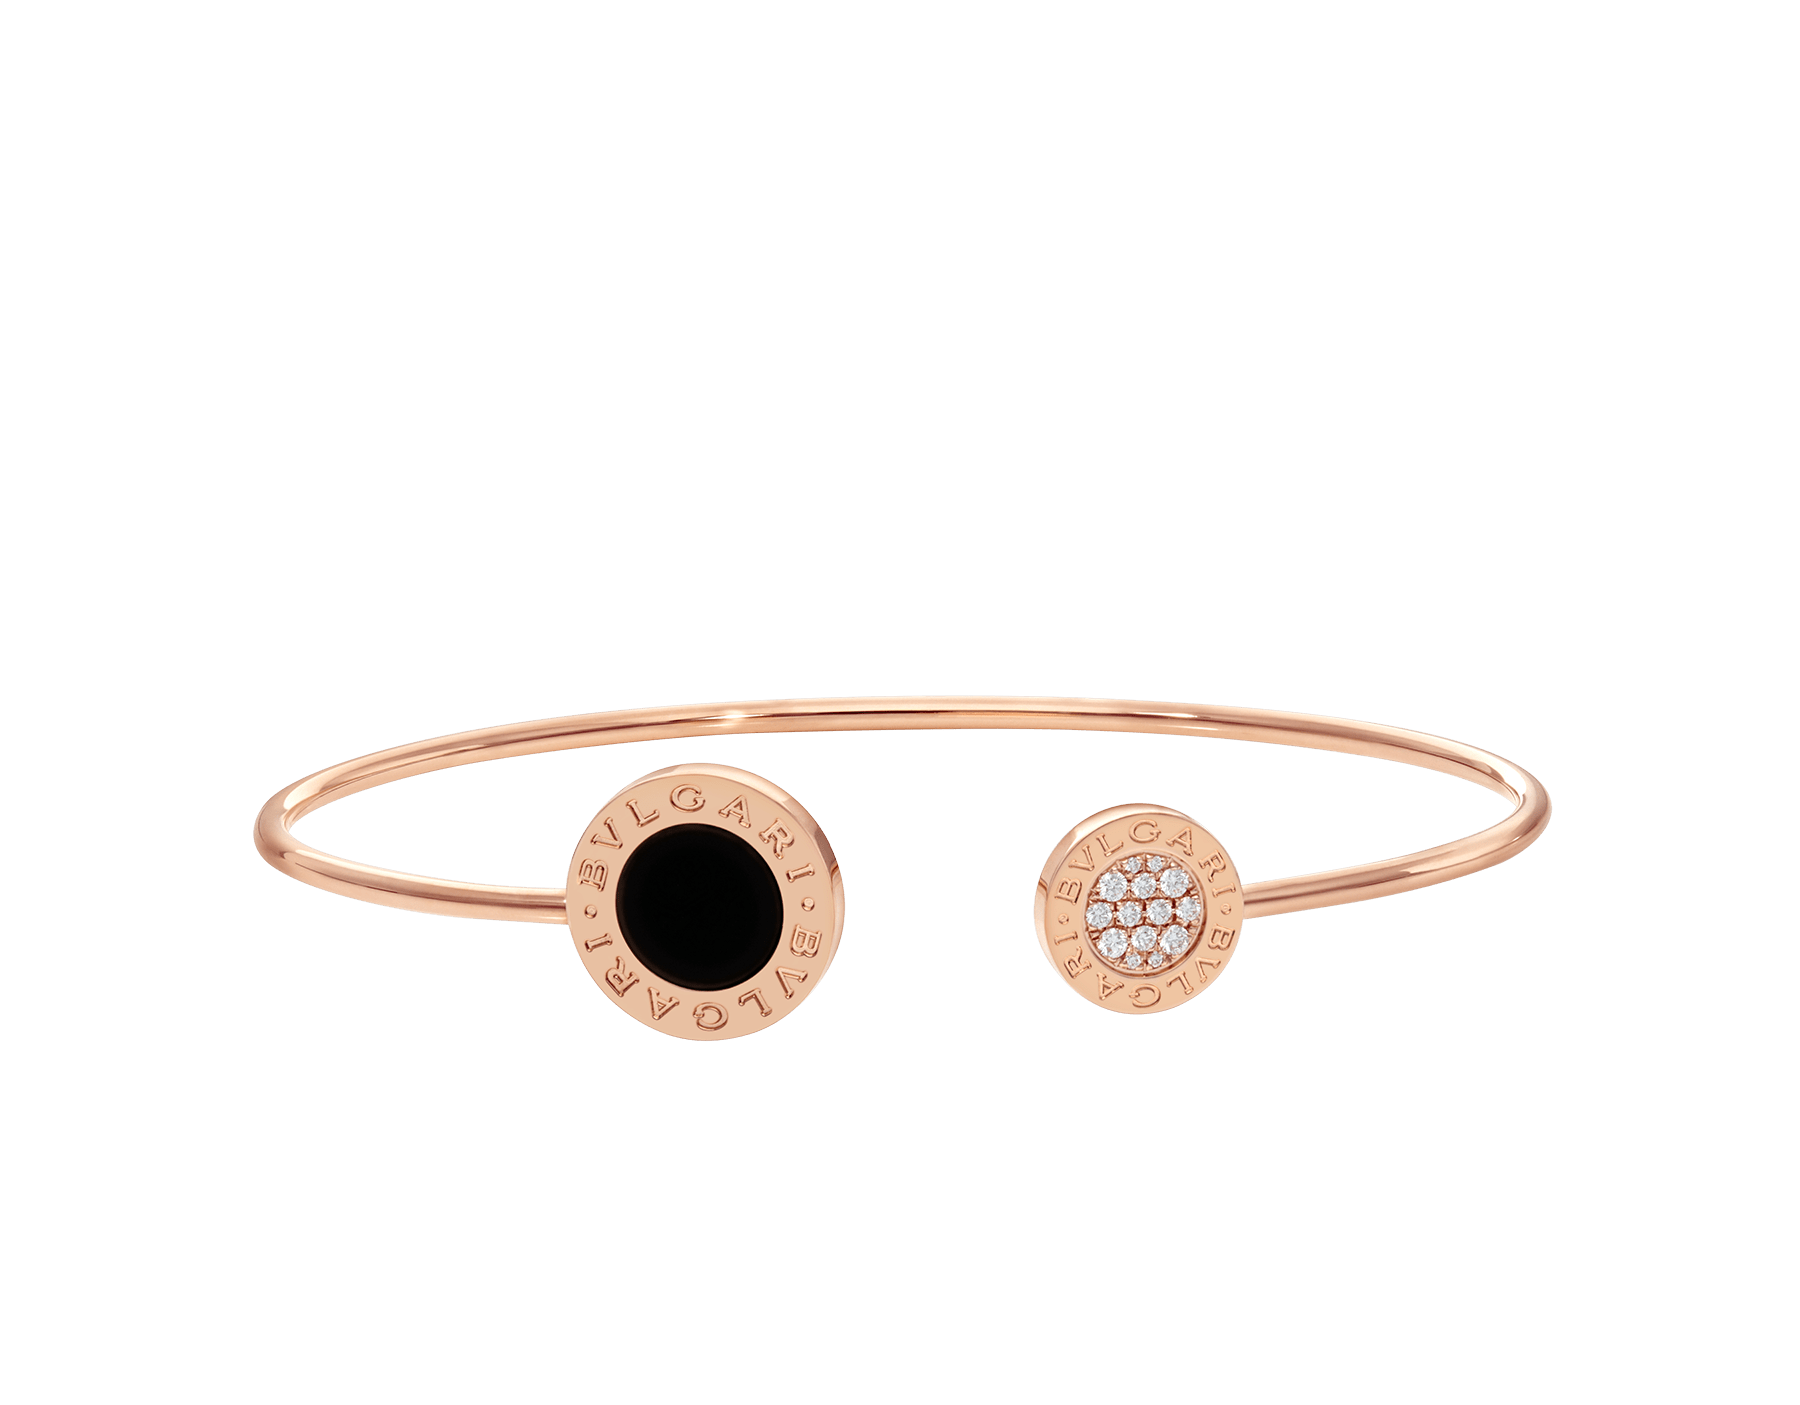 BVLGARI BVLGARI 18 kt rose gold bracelet set with onyx element and pavé diamonds (0.09 ct) BR858633 image 2